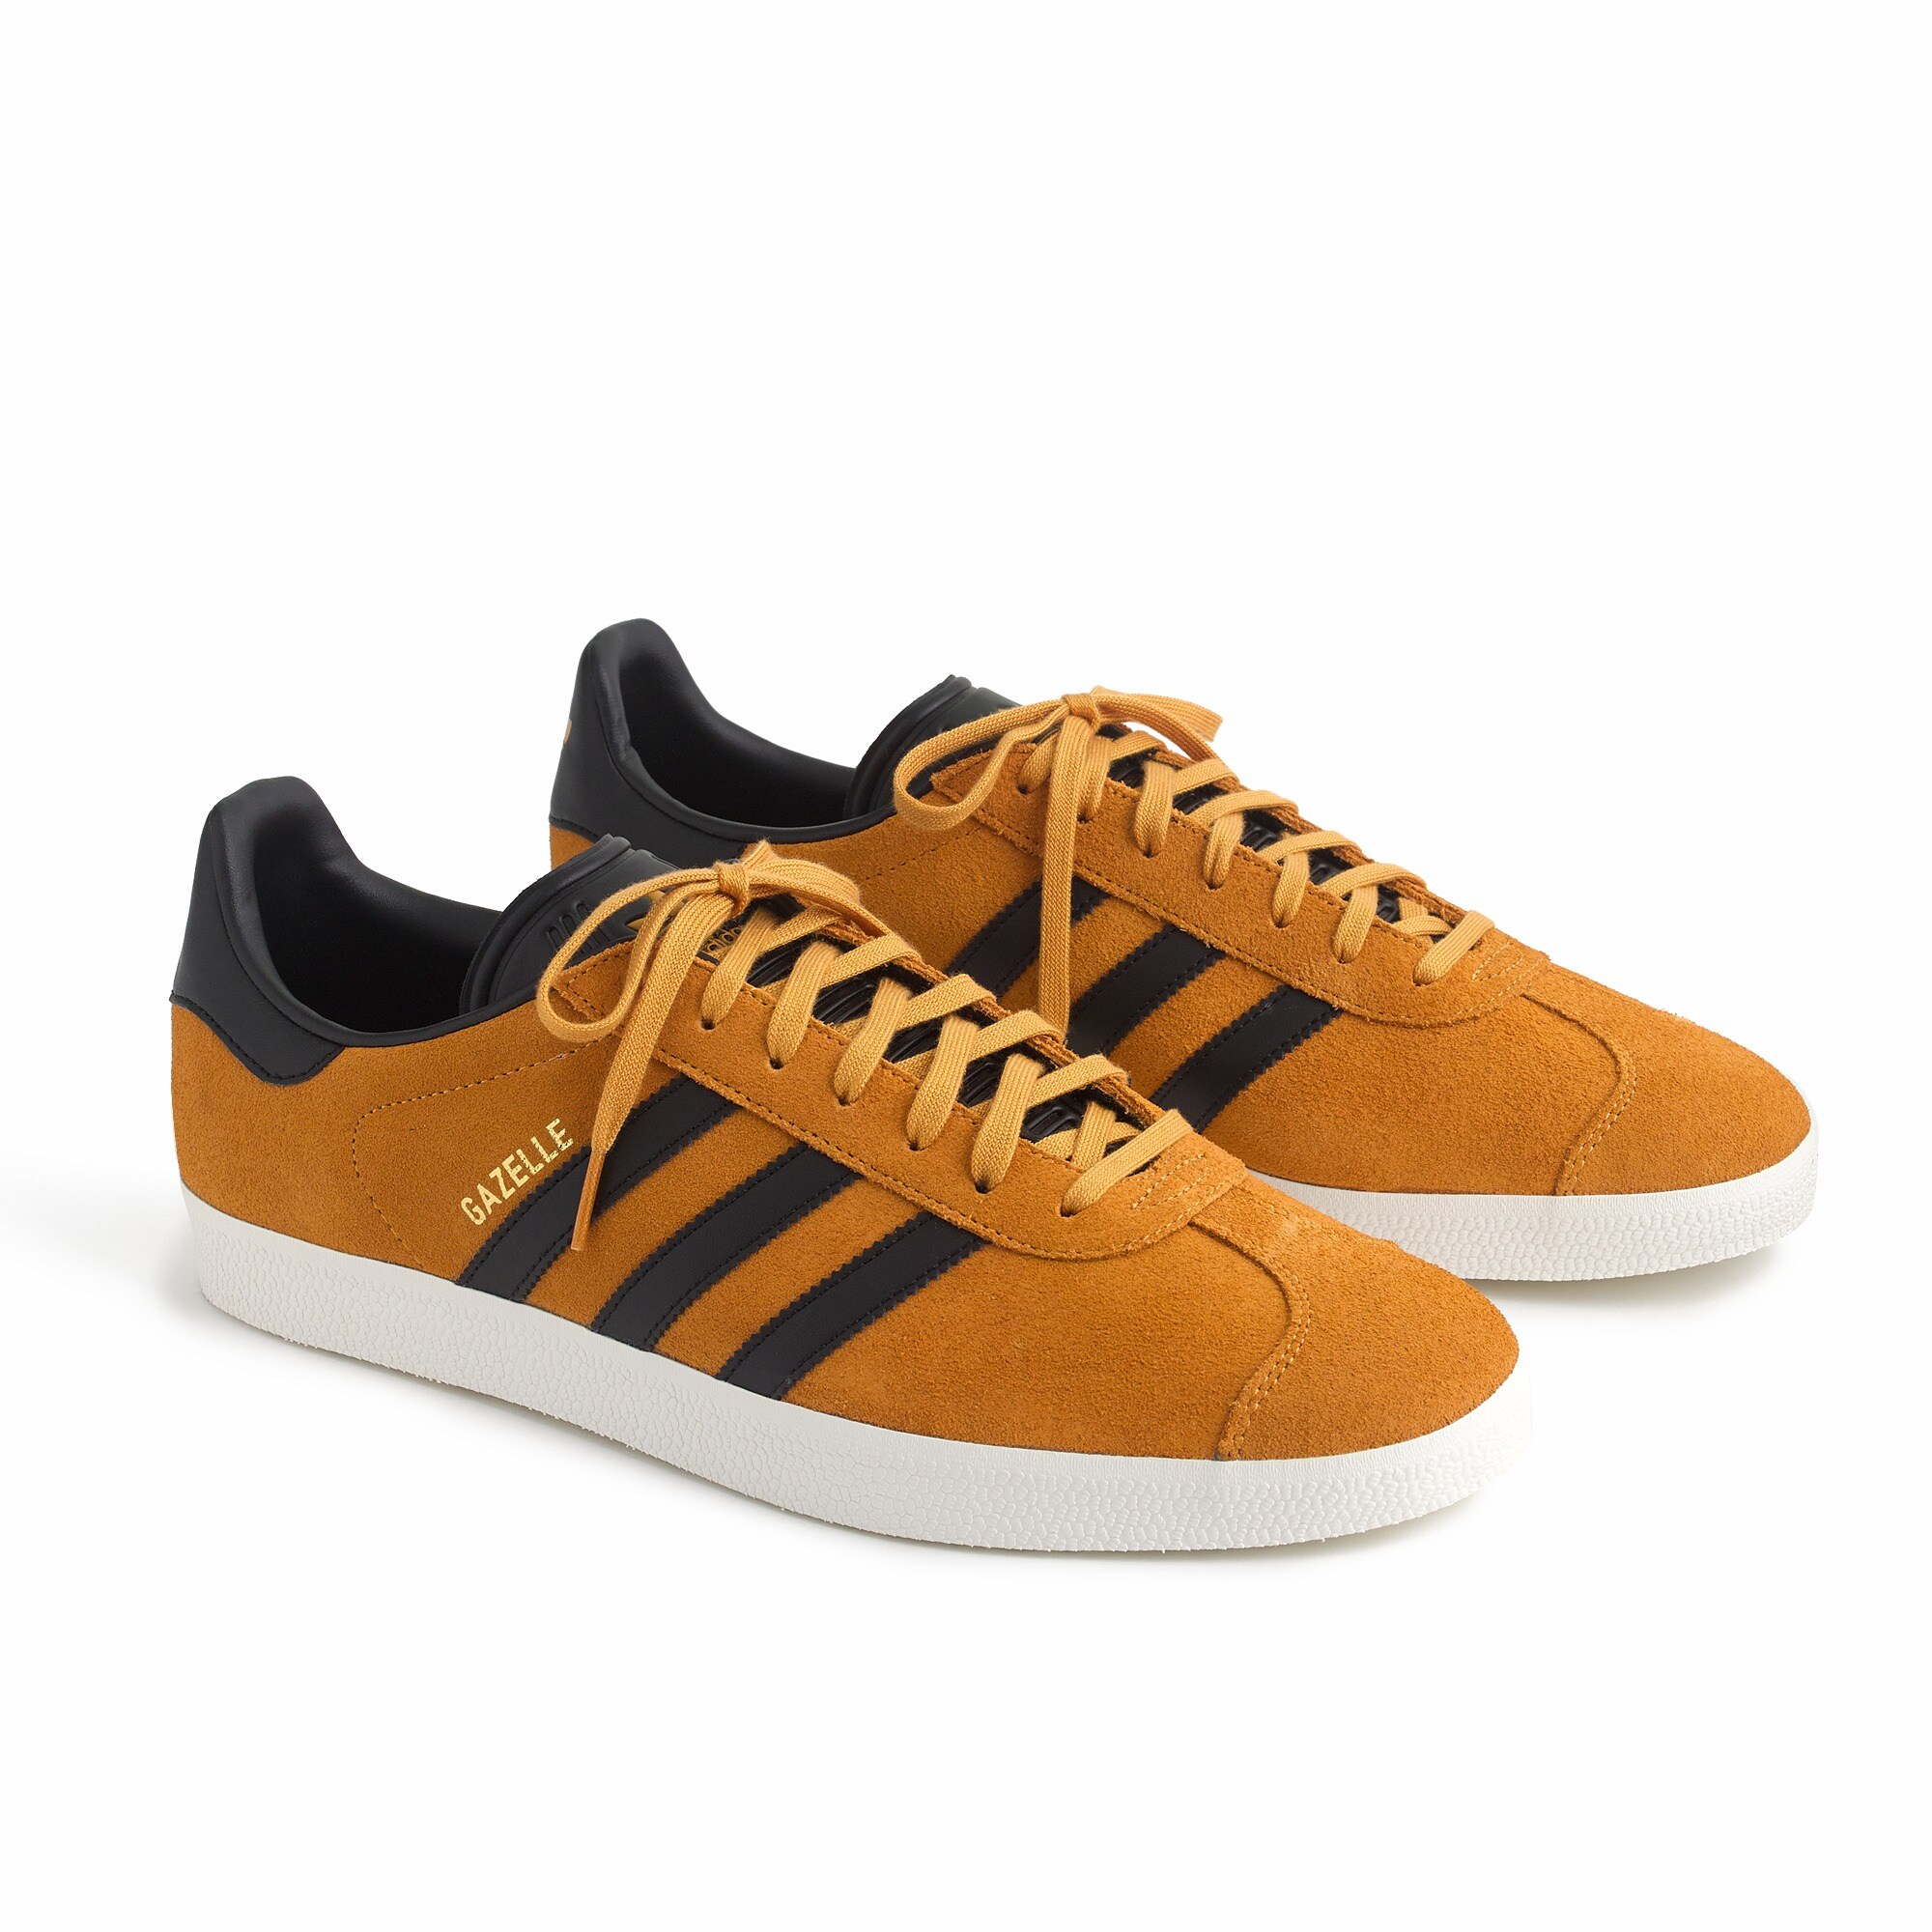 Adidas® Gazelle® sneakers men j.crew in good company c